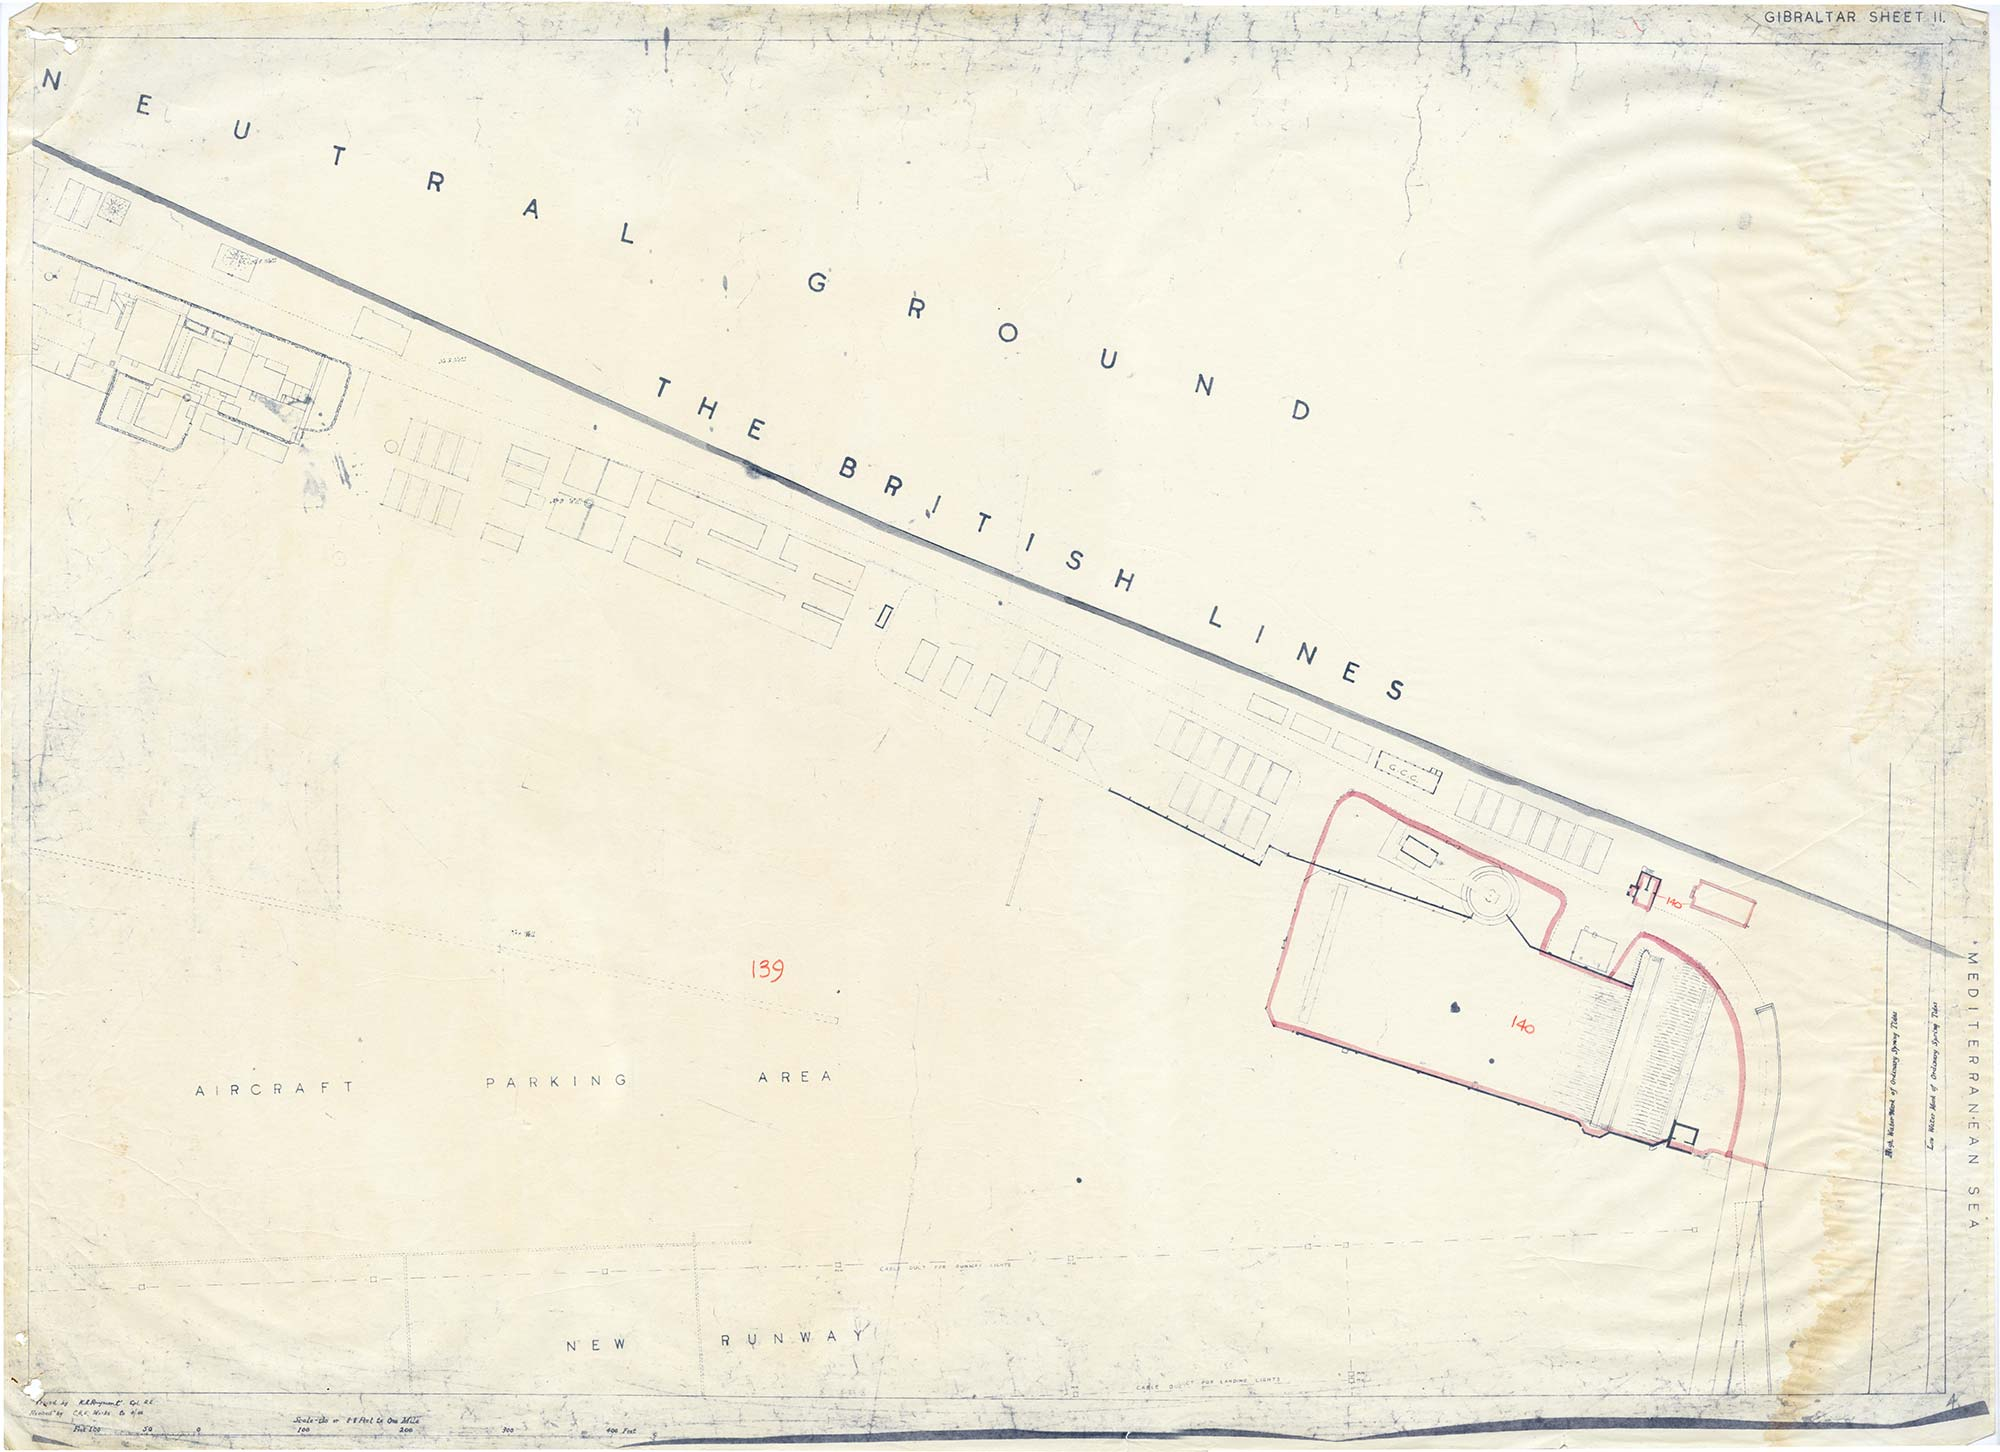 Map-16-OS-Sheet-2-Border-to-Eastern-Beach-1944